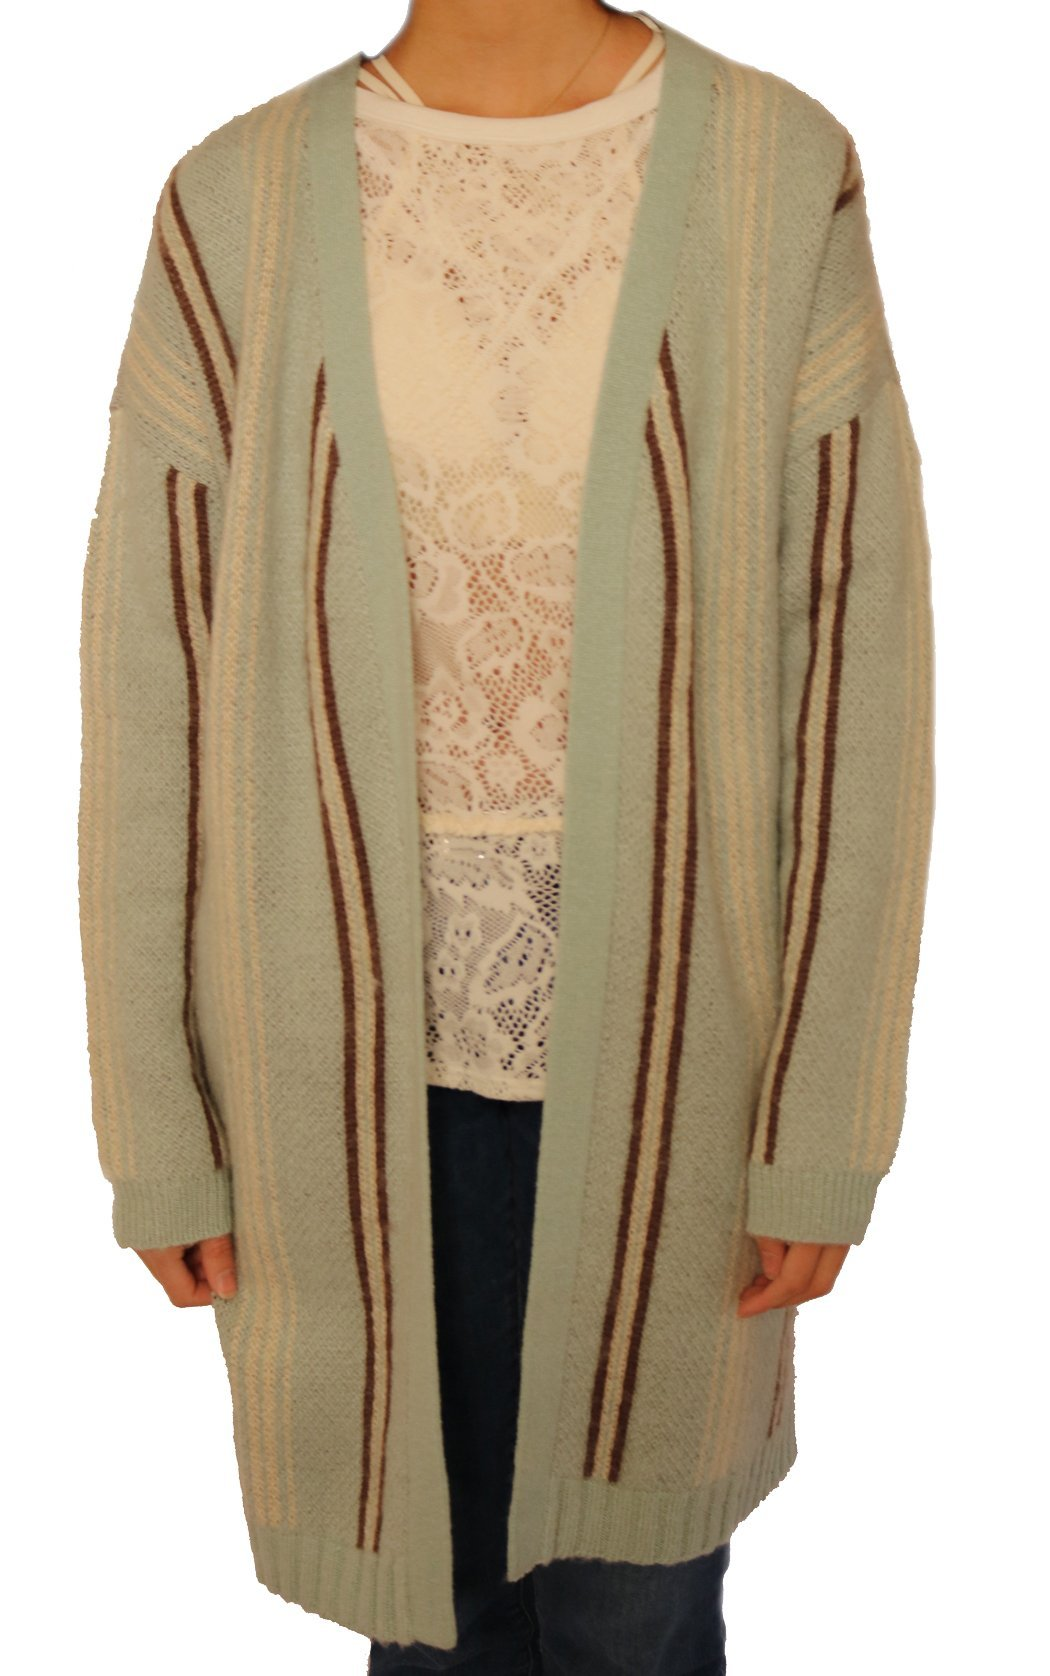 Aratta Winter Frost Cardigan - Turquoise by